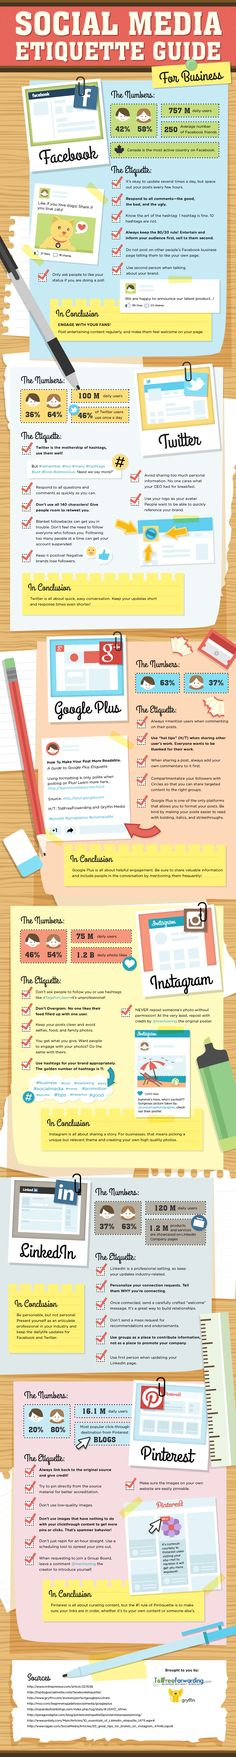 Social media etiquette-gids- do's & don'ts [infographic]